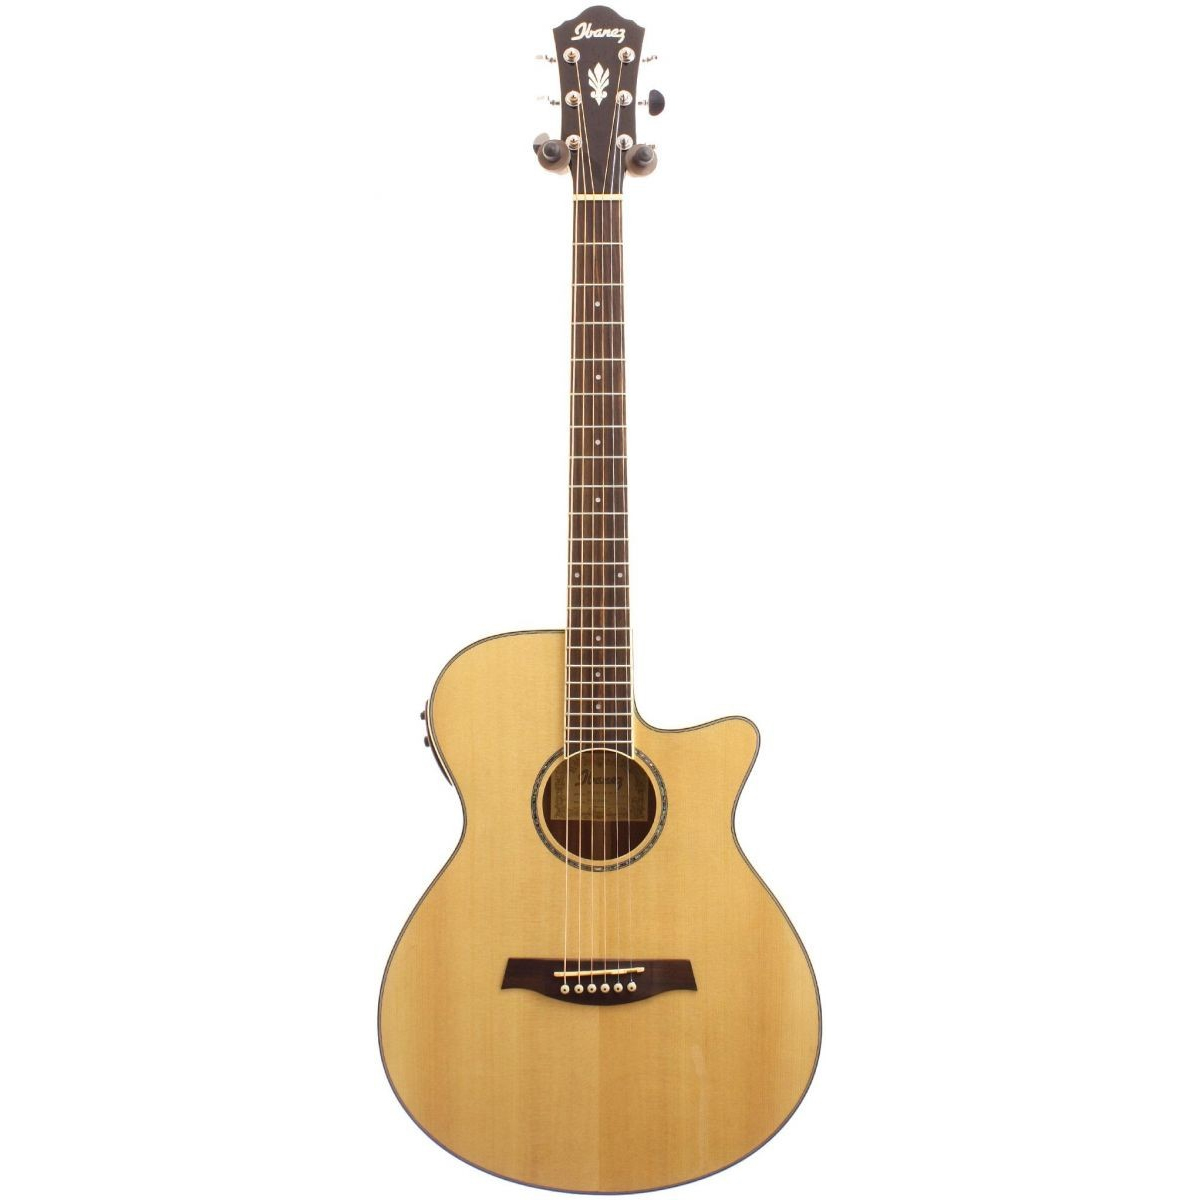 Ibanez AEG10II-NT AEG Series Acoustic Electric Guitar